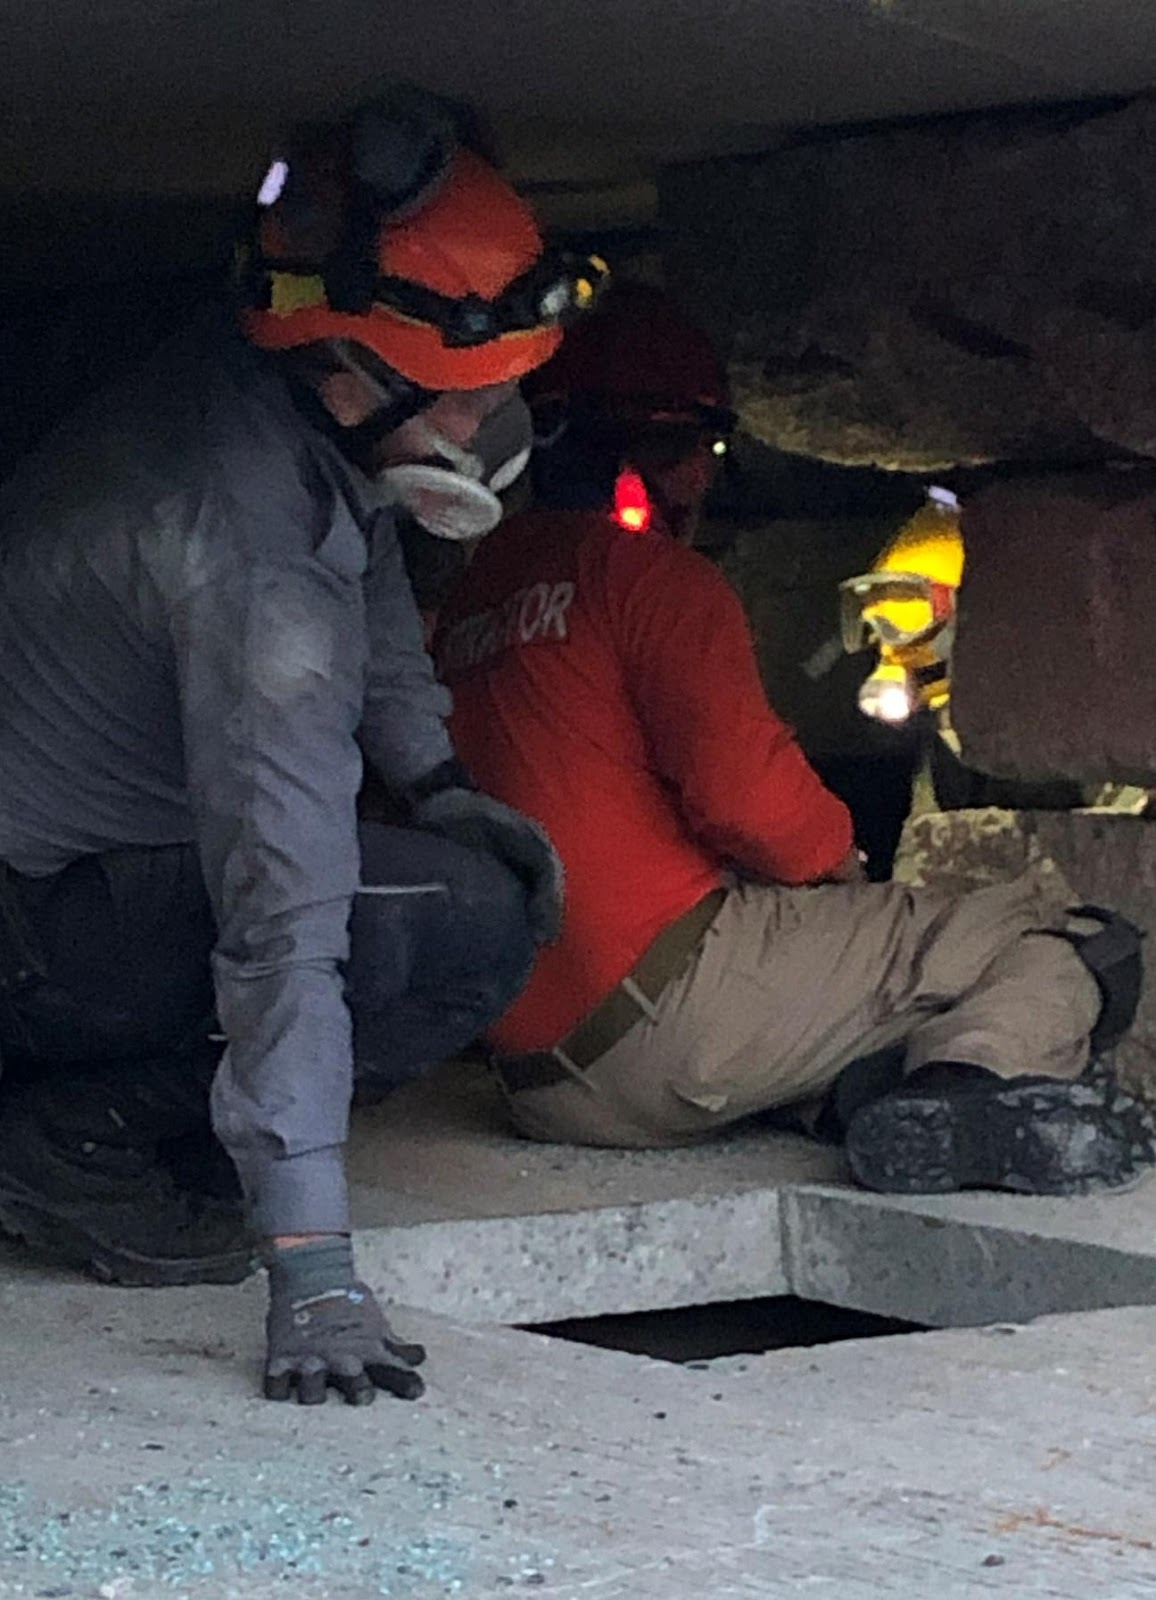 Reaching, assessing and treating injured victims in confined spaces adds significantly to the realism and effectiveness of the training.